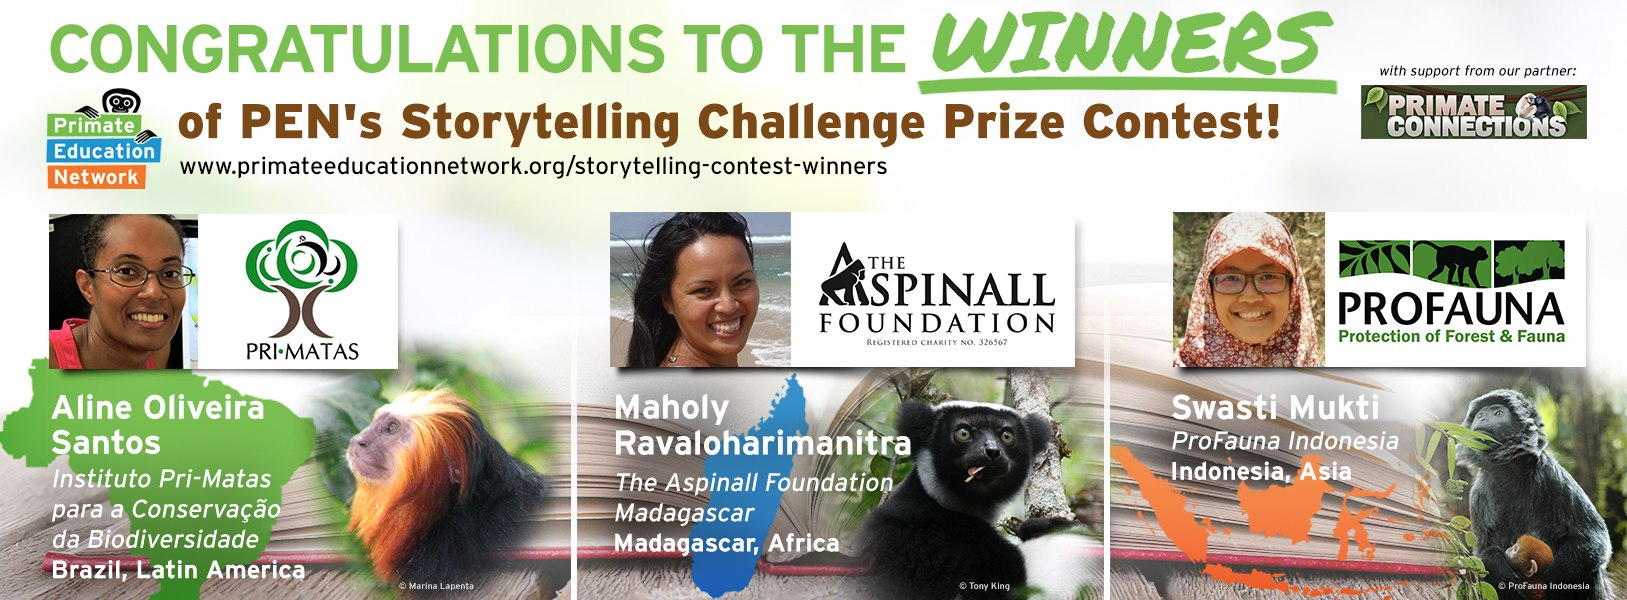 Storytelling Challenge Prize Contest Winners